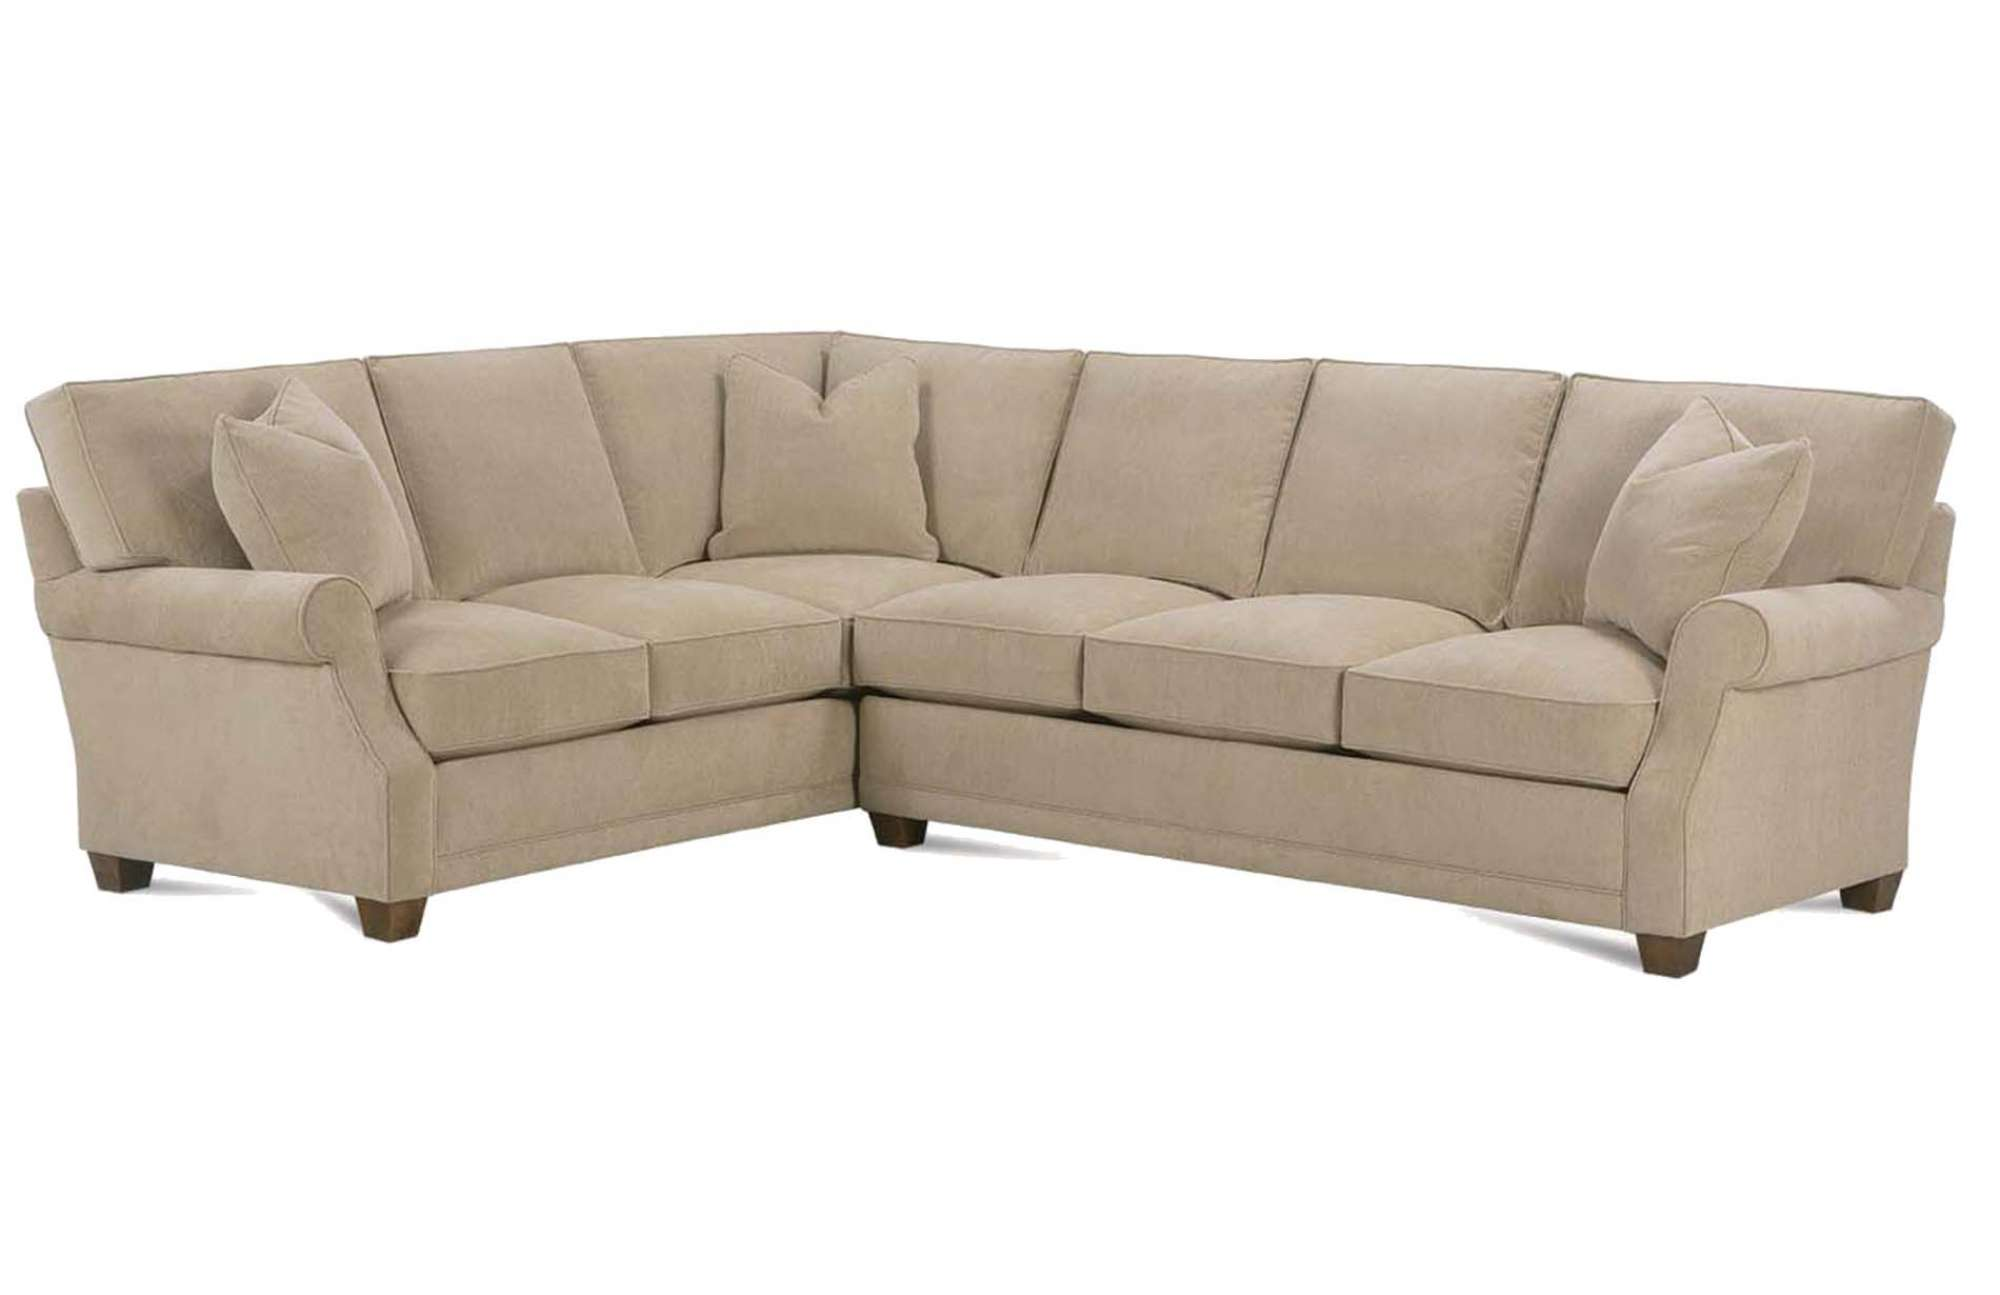 Baker P210 Sectional 350 Fabrics And Colors Sofas